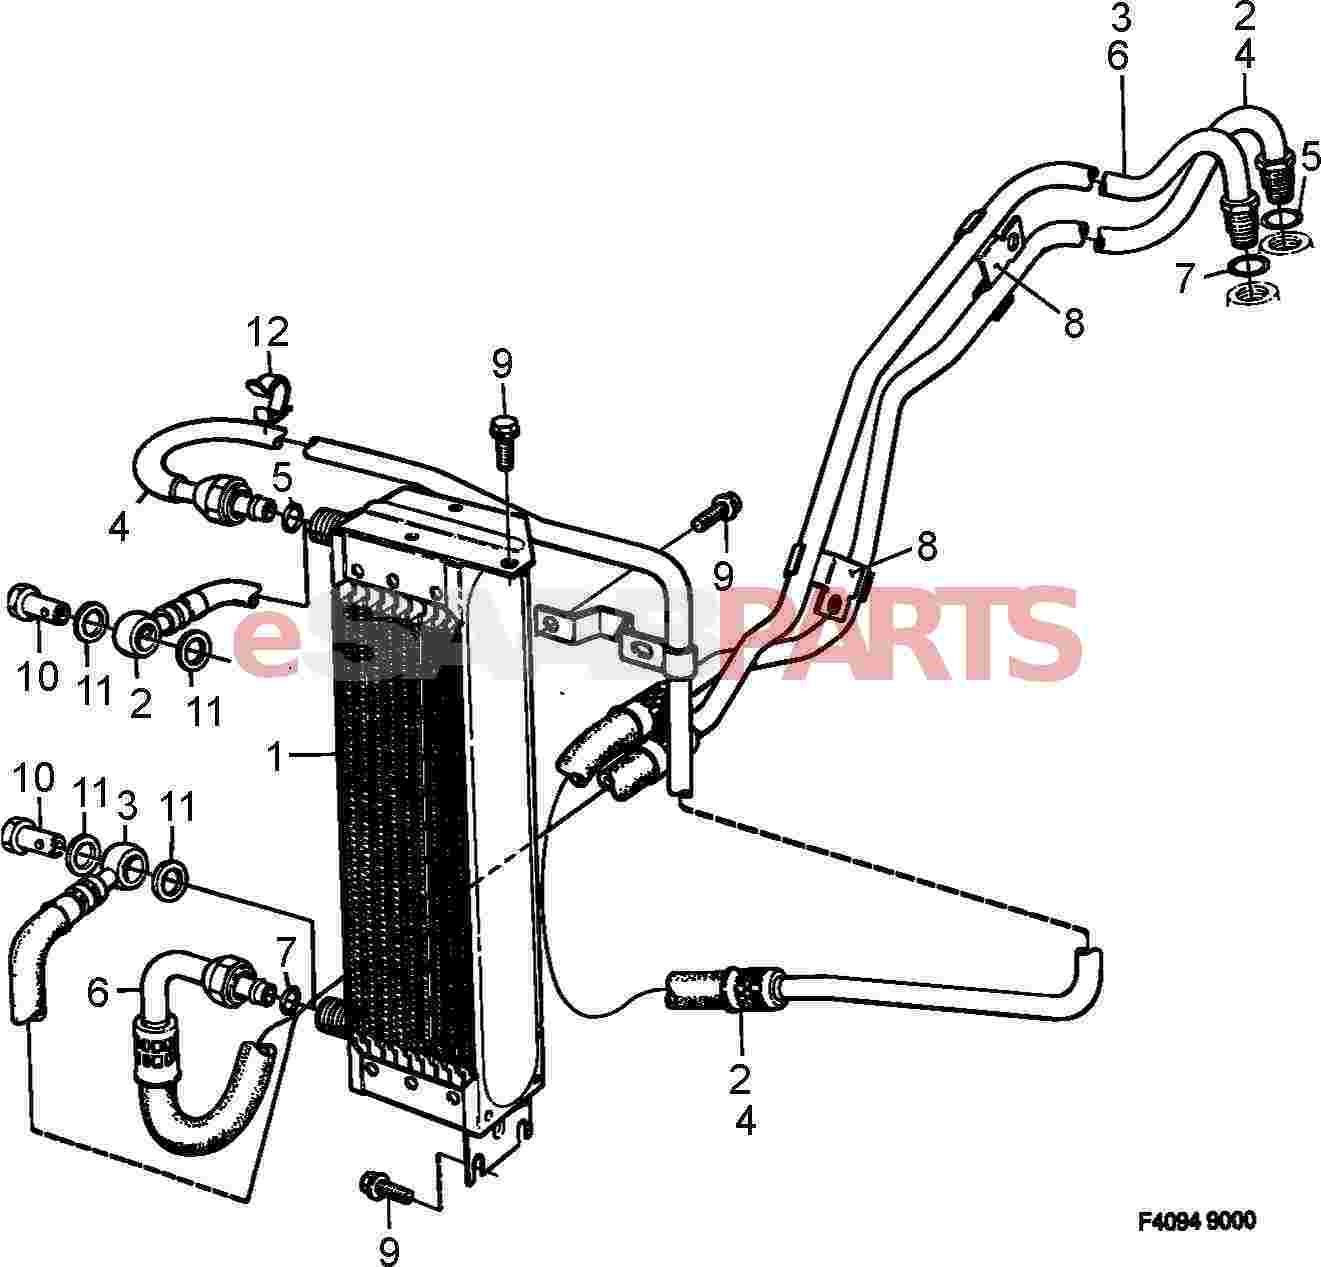 tags: #ford model t engine diagram#ford aspire engine diagram#ford 2#ford  bronco engine diagram#ford expedition engine diagram#1996 ford windstar  engine